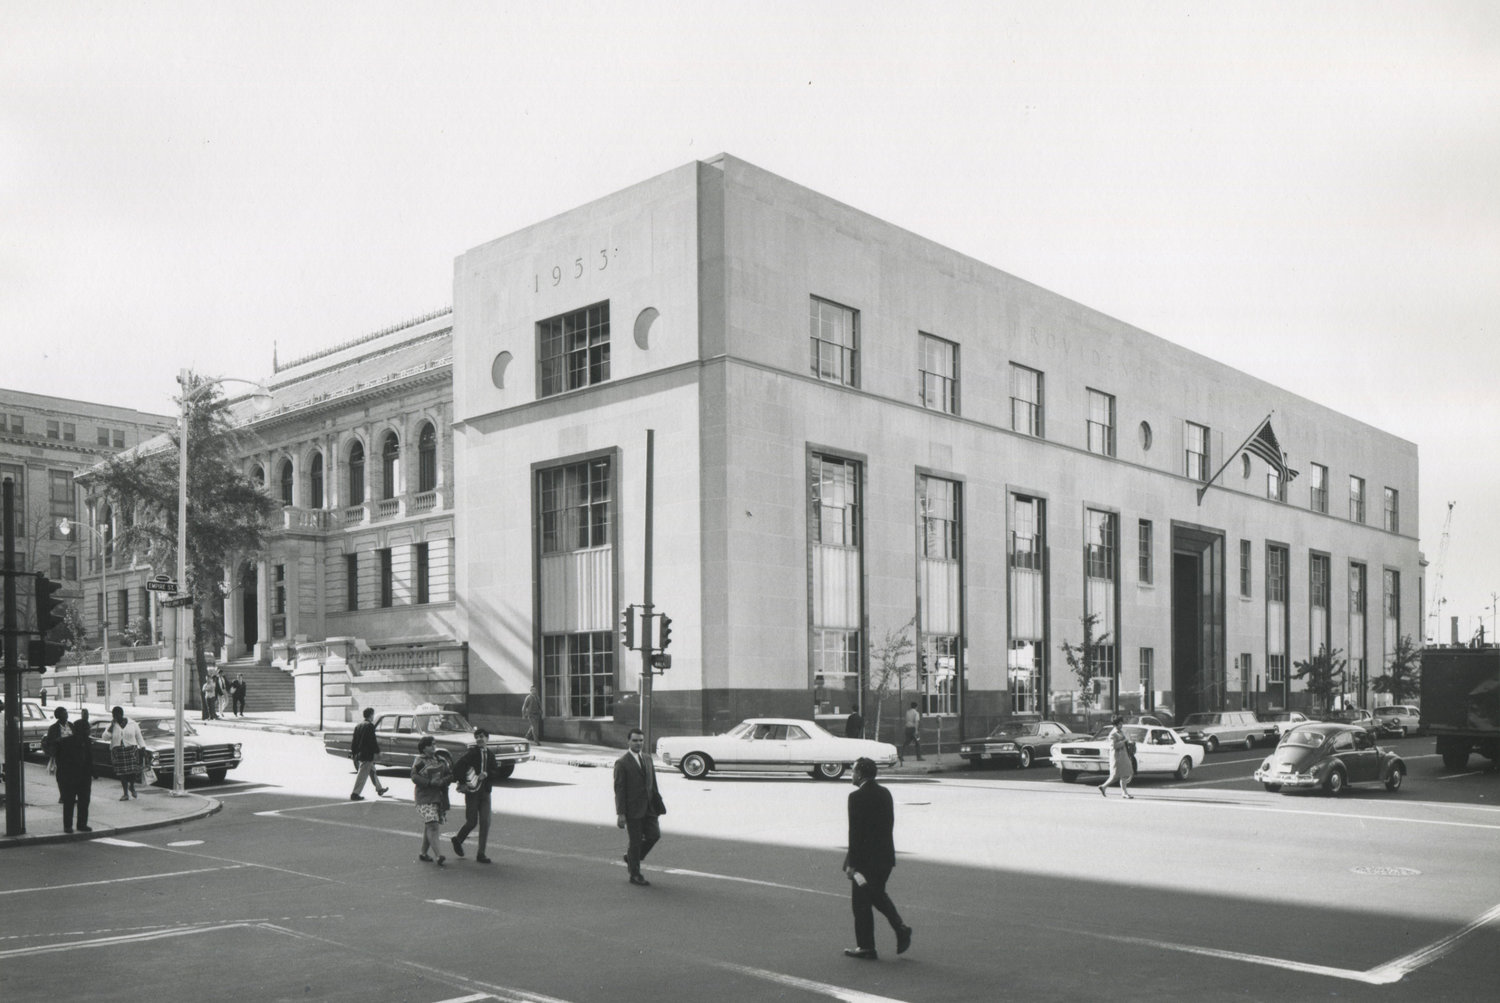 Historic photo of the library from archives